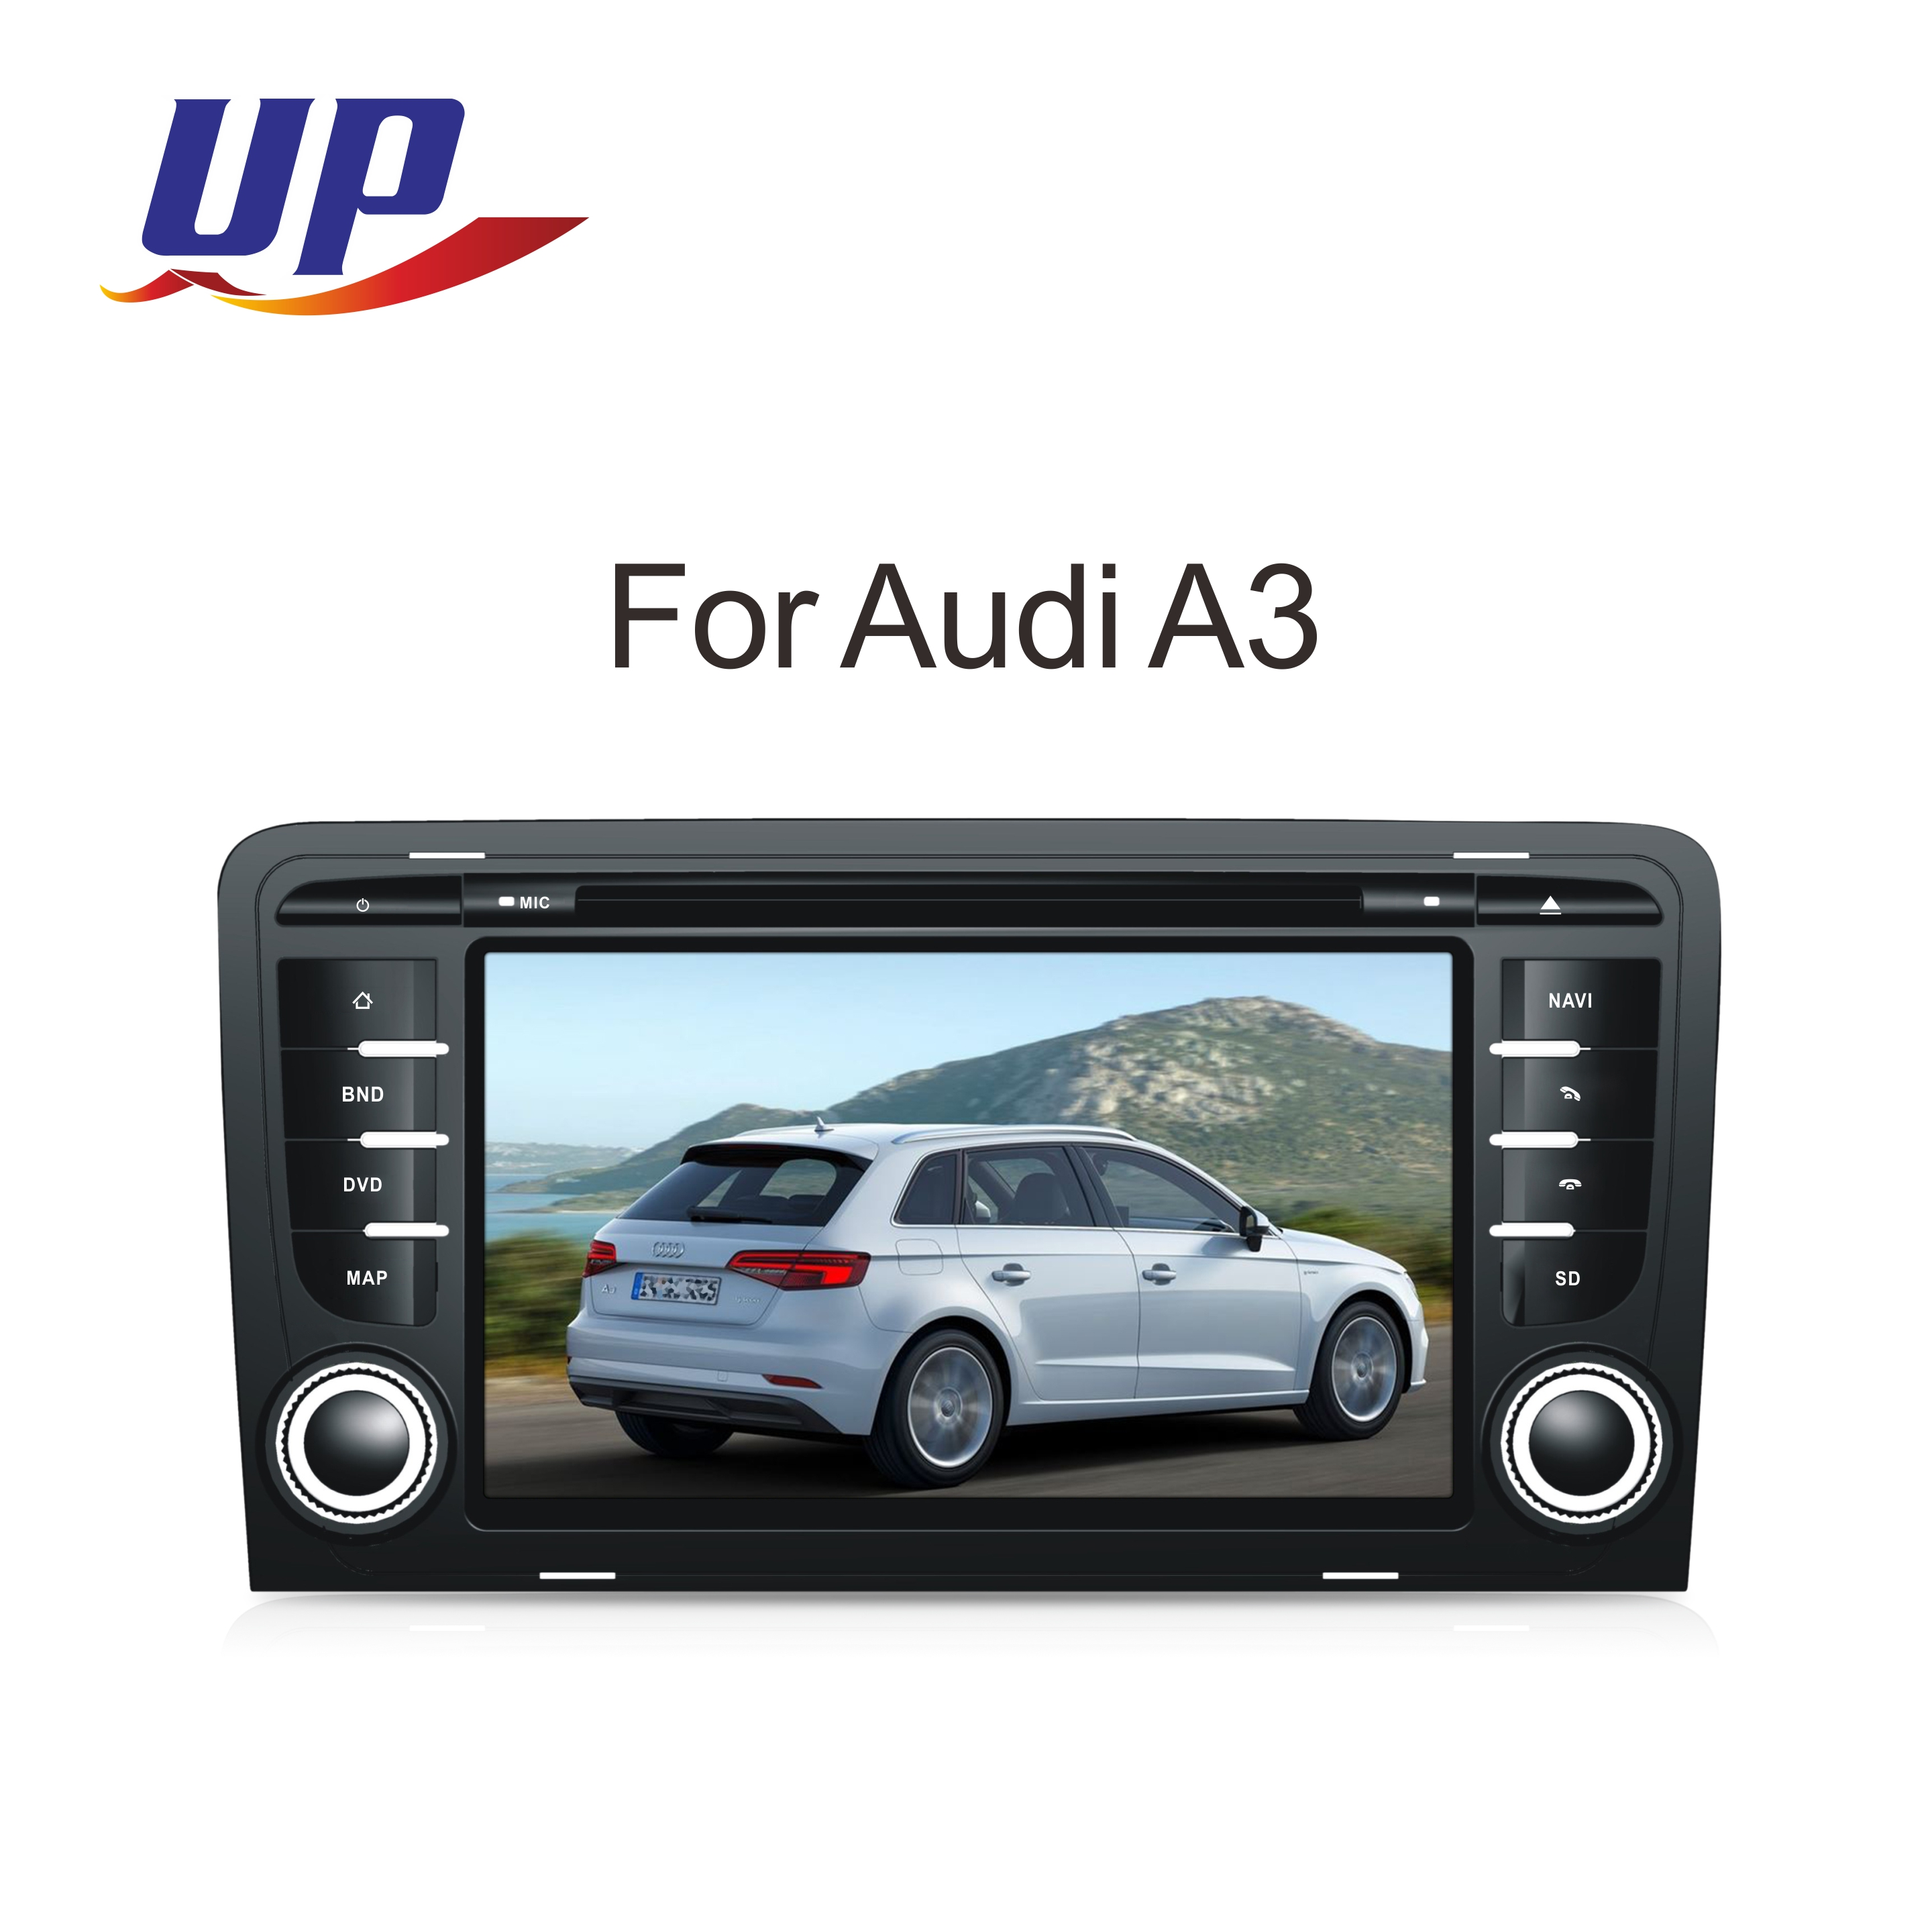 Rockchip Px5 Android 8 1 Car Dvd Player With Gps Bluetooth Phone Link For  Audi A3 / S3 / Rs3 - Buy Car Dvd For Audi A3,Car Dvd Multimidia For Audi